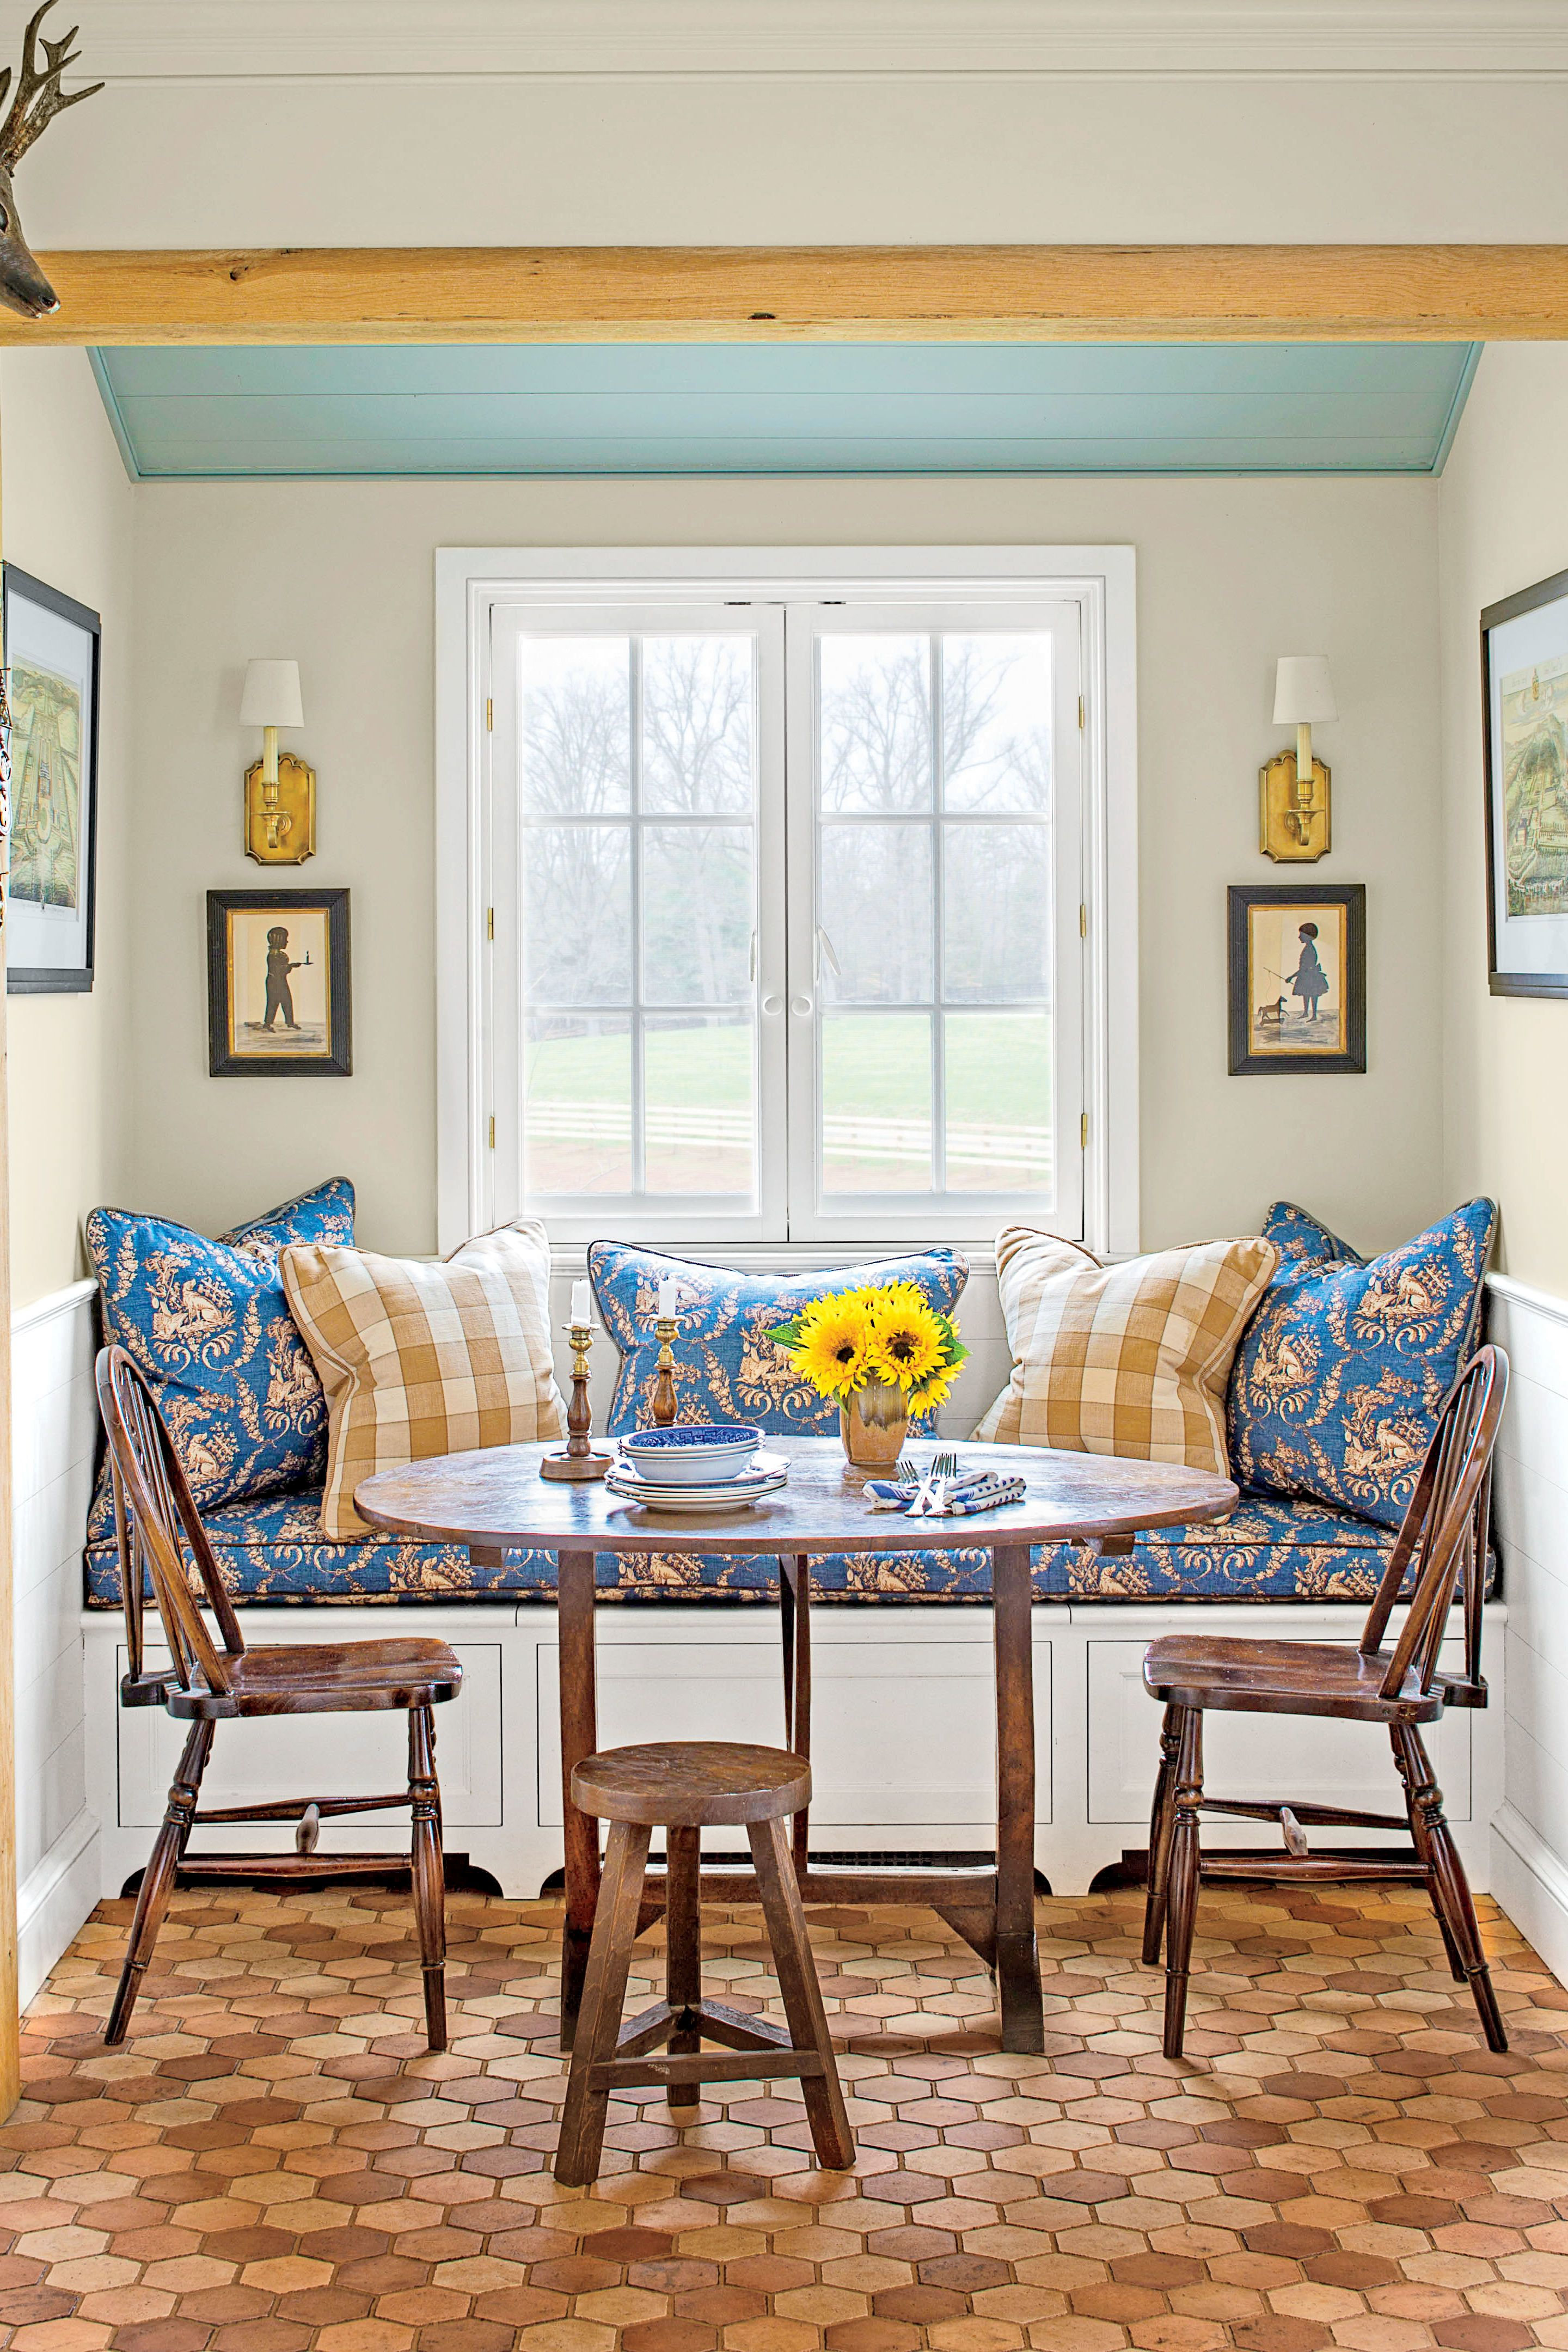 Window nook decorating ideas  home decor ideas  window benches dining nook and bench